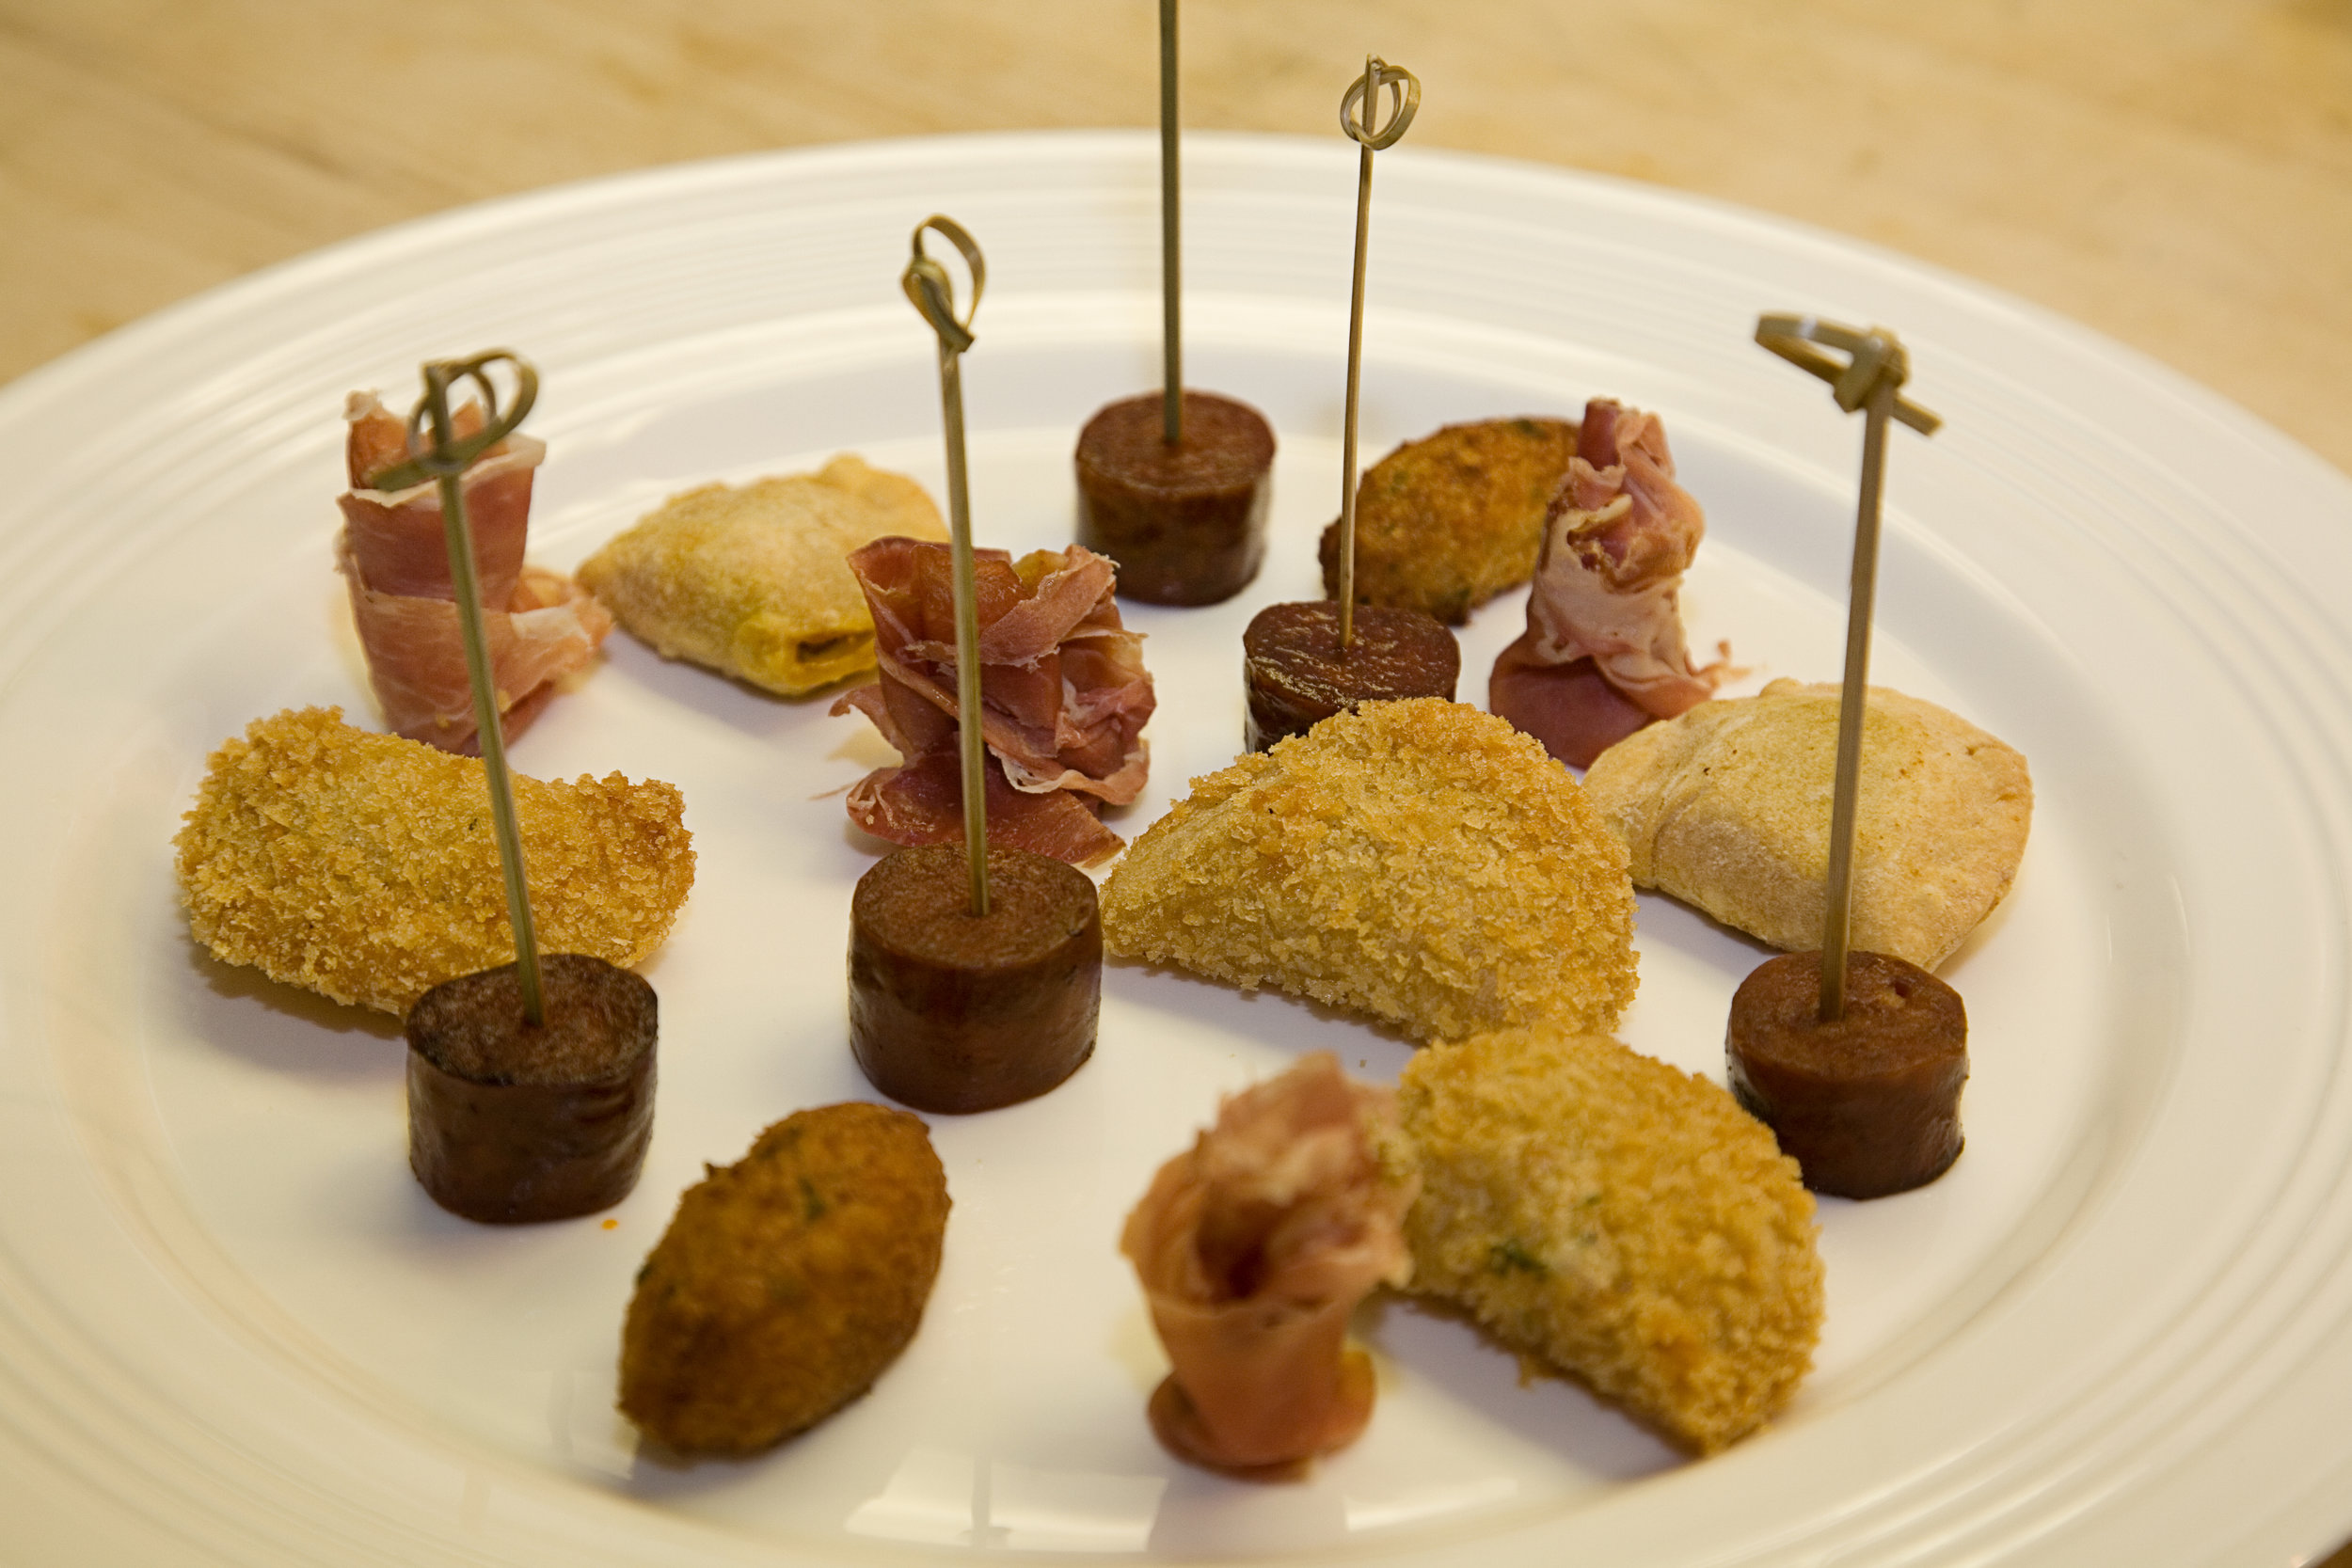 Canapes-4524.jpg